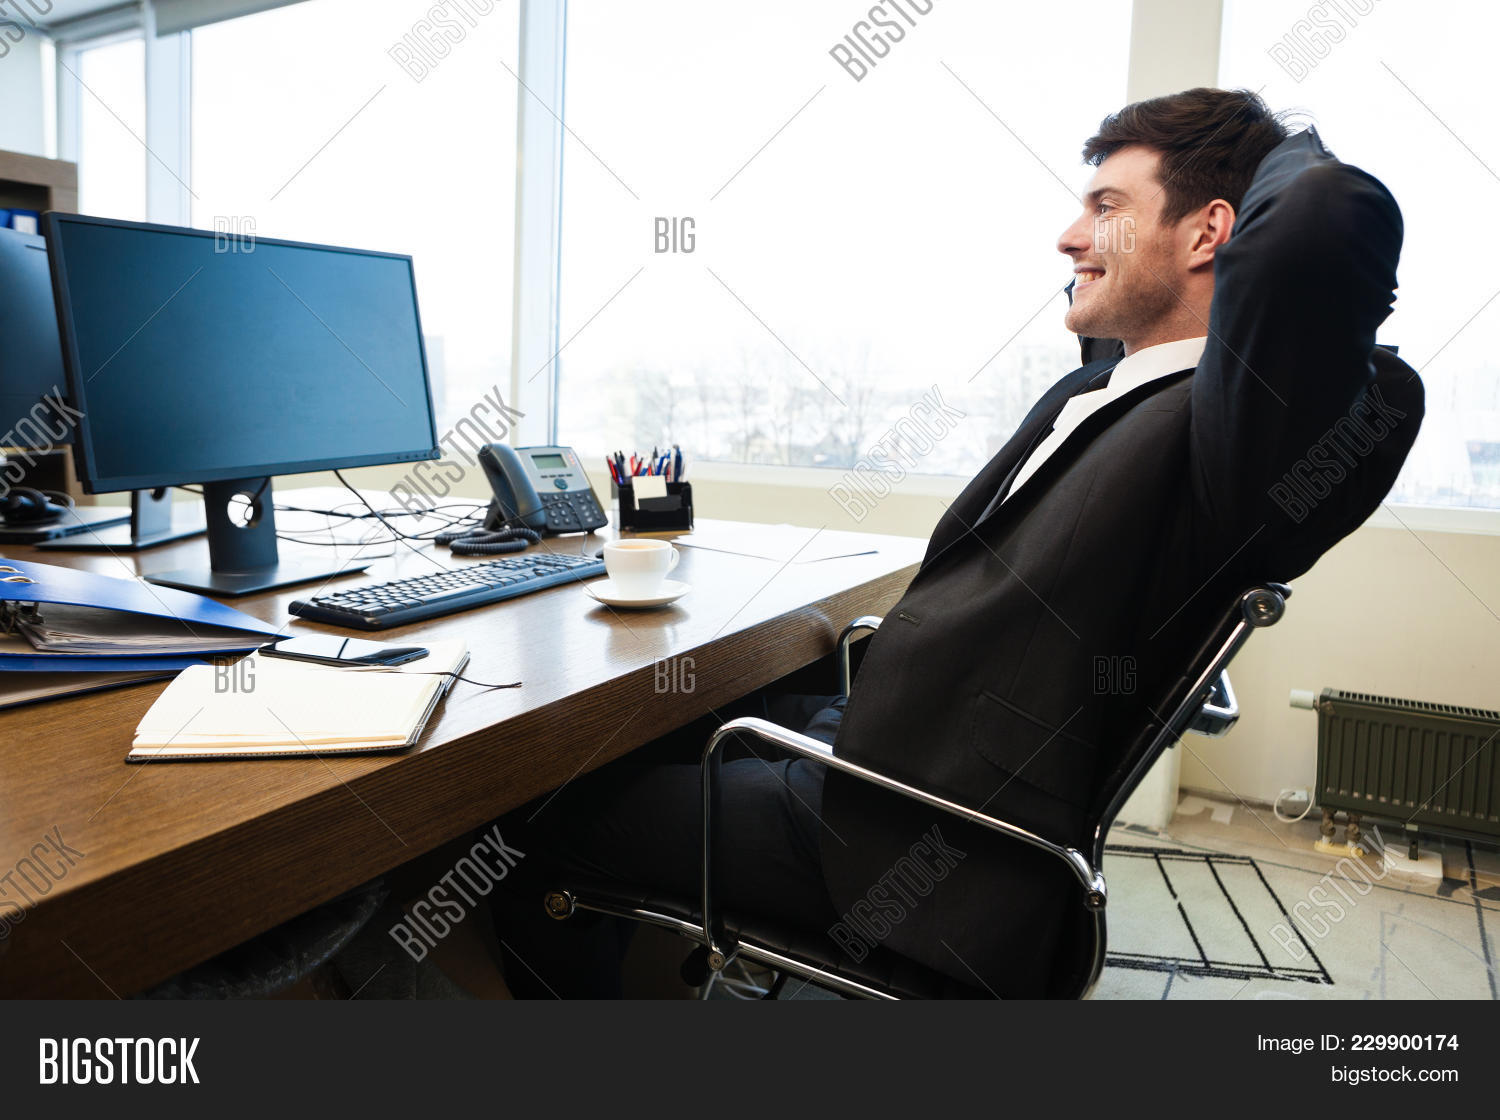 office chair leaning to one side posture pack seat wedge portrait young image and photo free trial bigstock